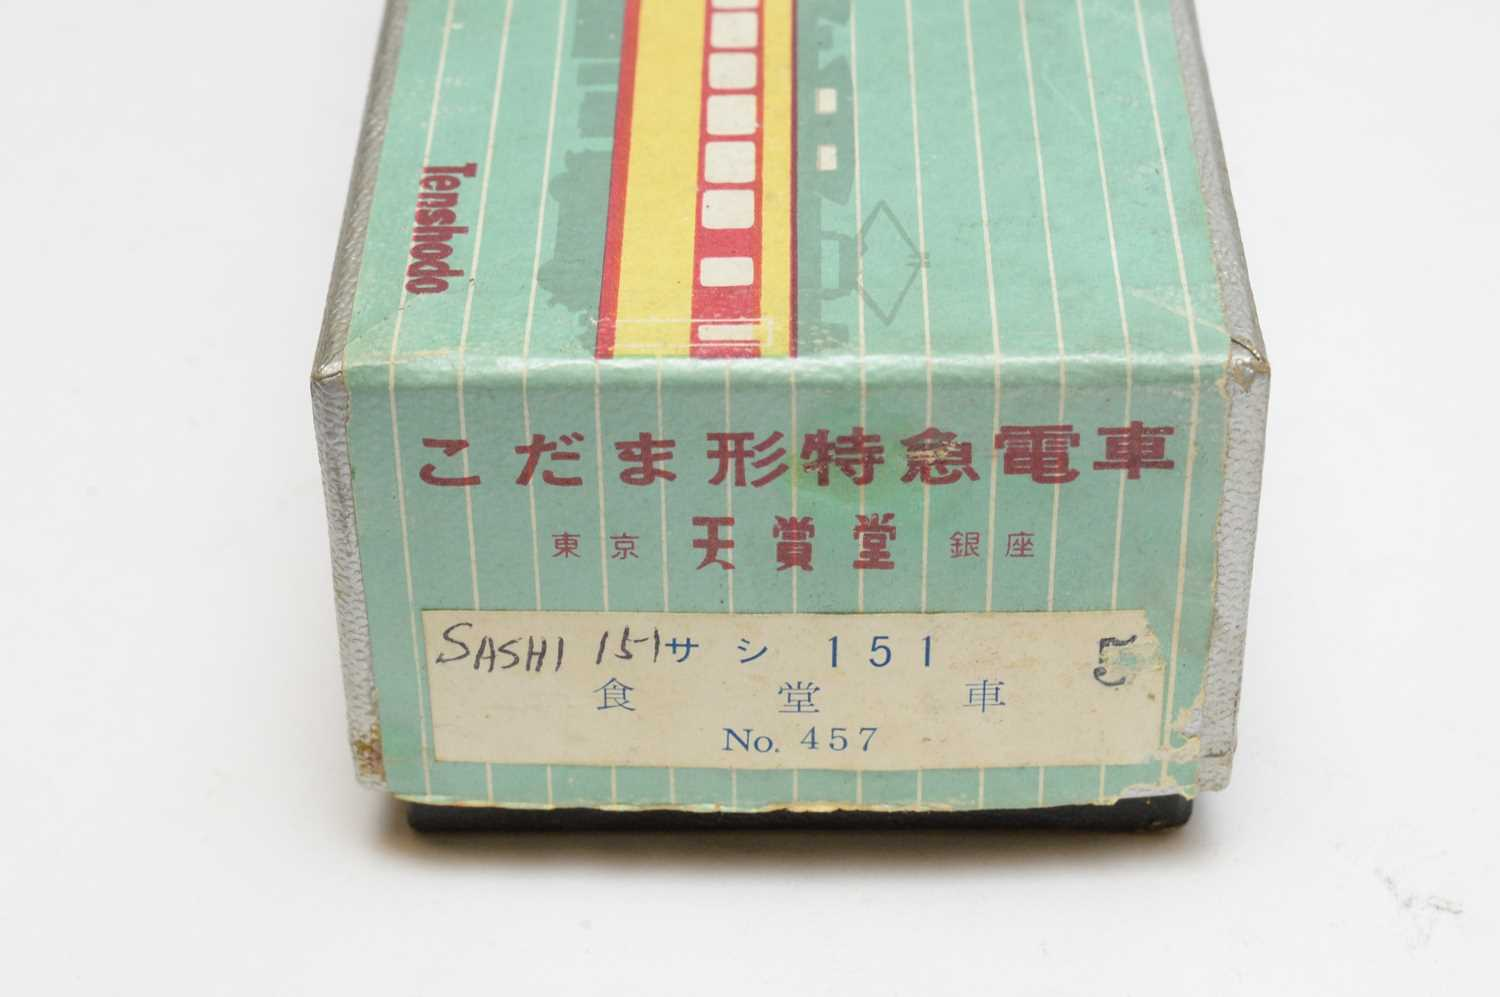 Boxed and unboxed Tenshodo Inter-City electric trains. - Image 3 of 3